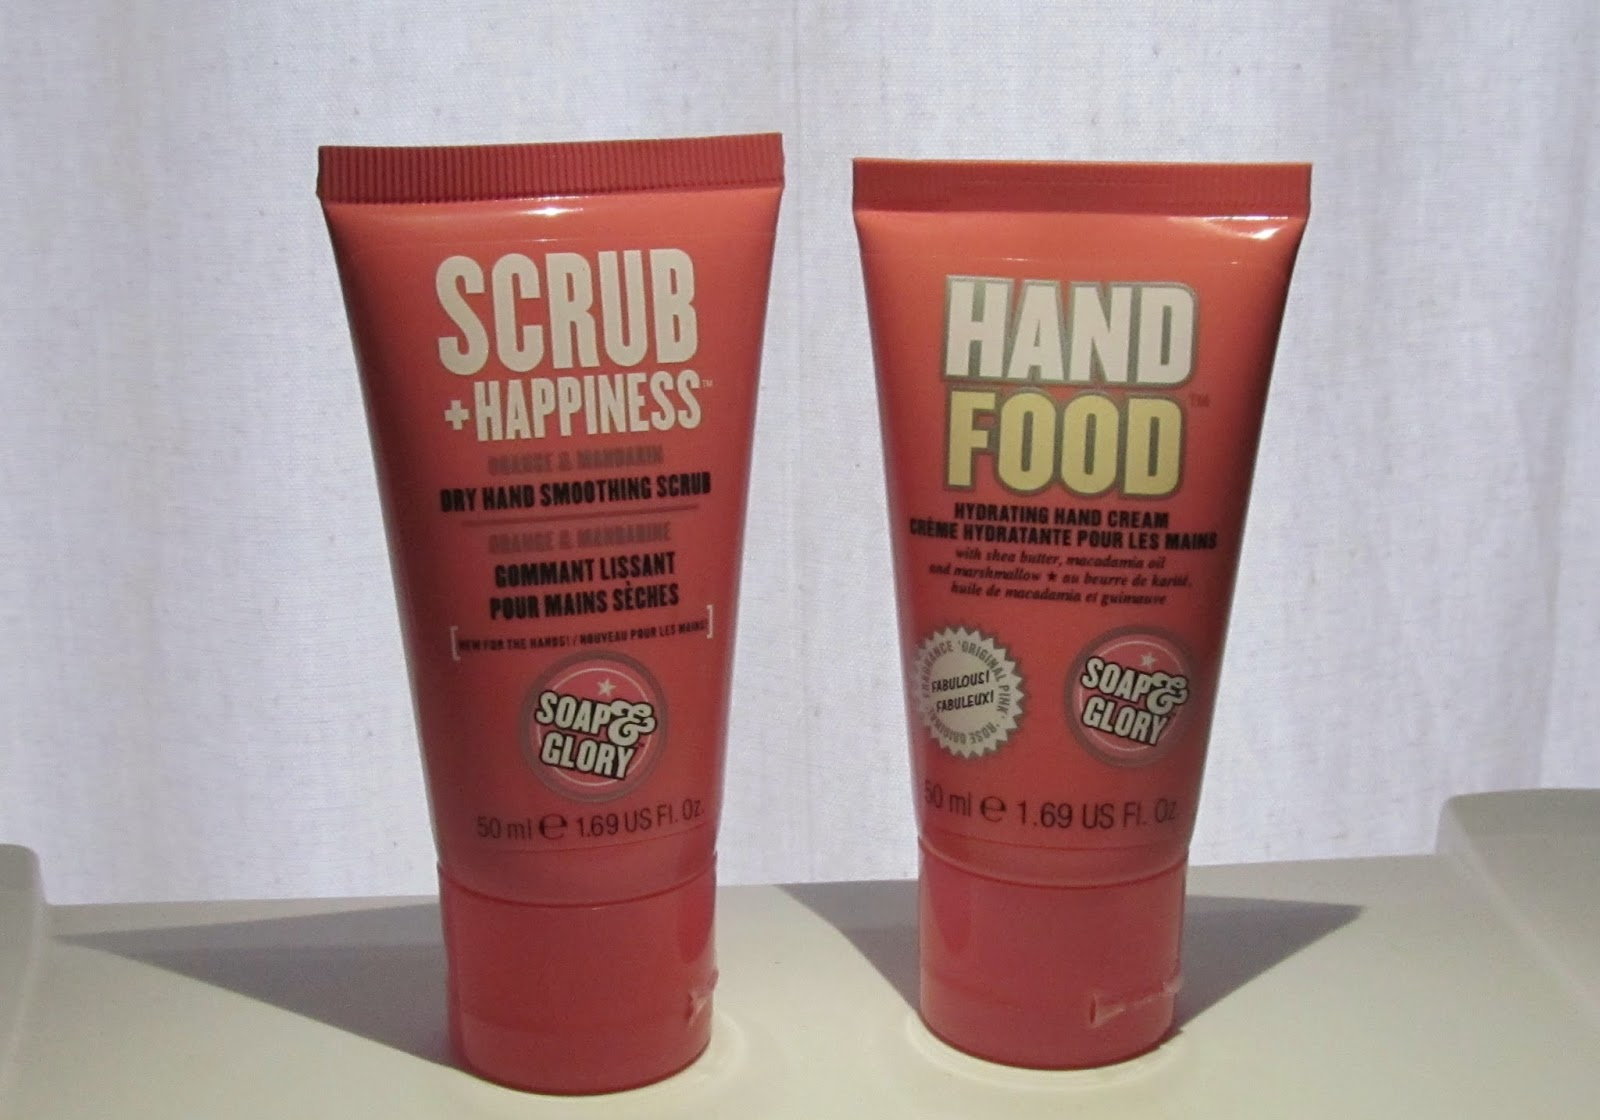 Soap and Glory hand products